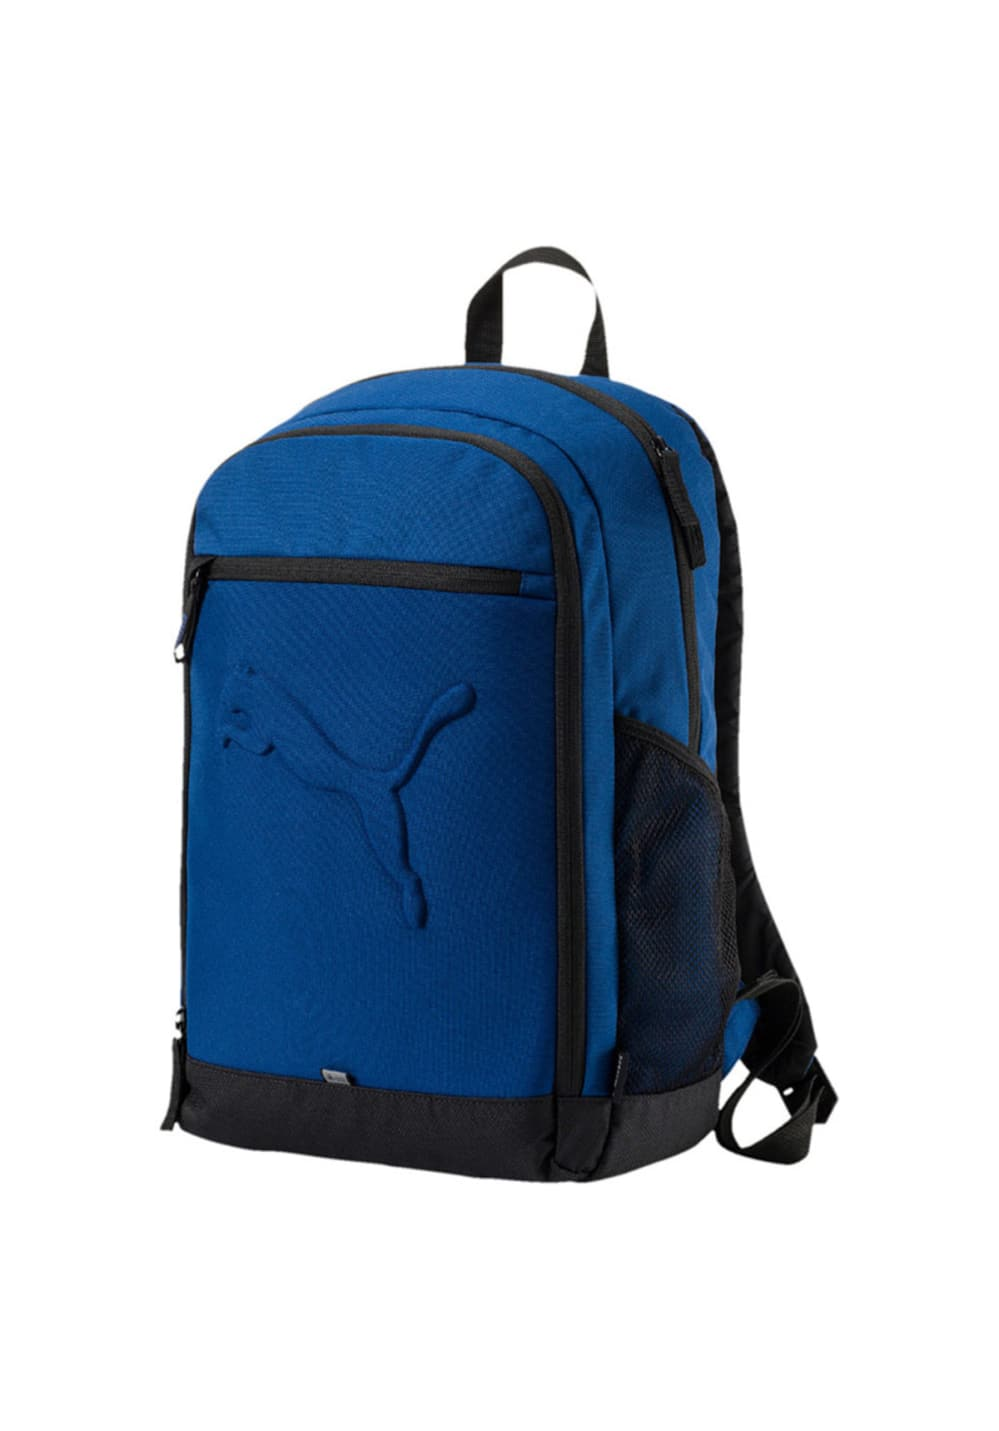 Puma Buzz Backpack Rucksäcke - Blau